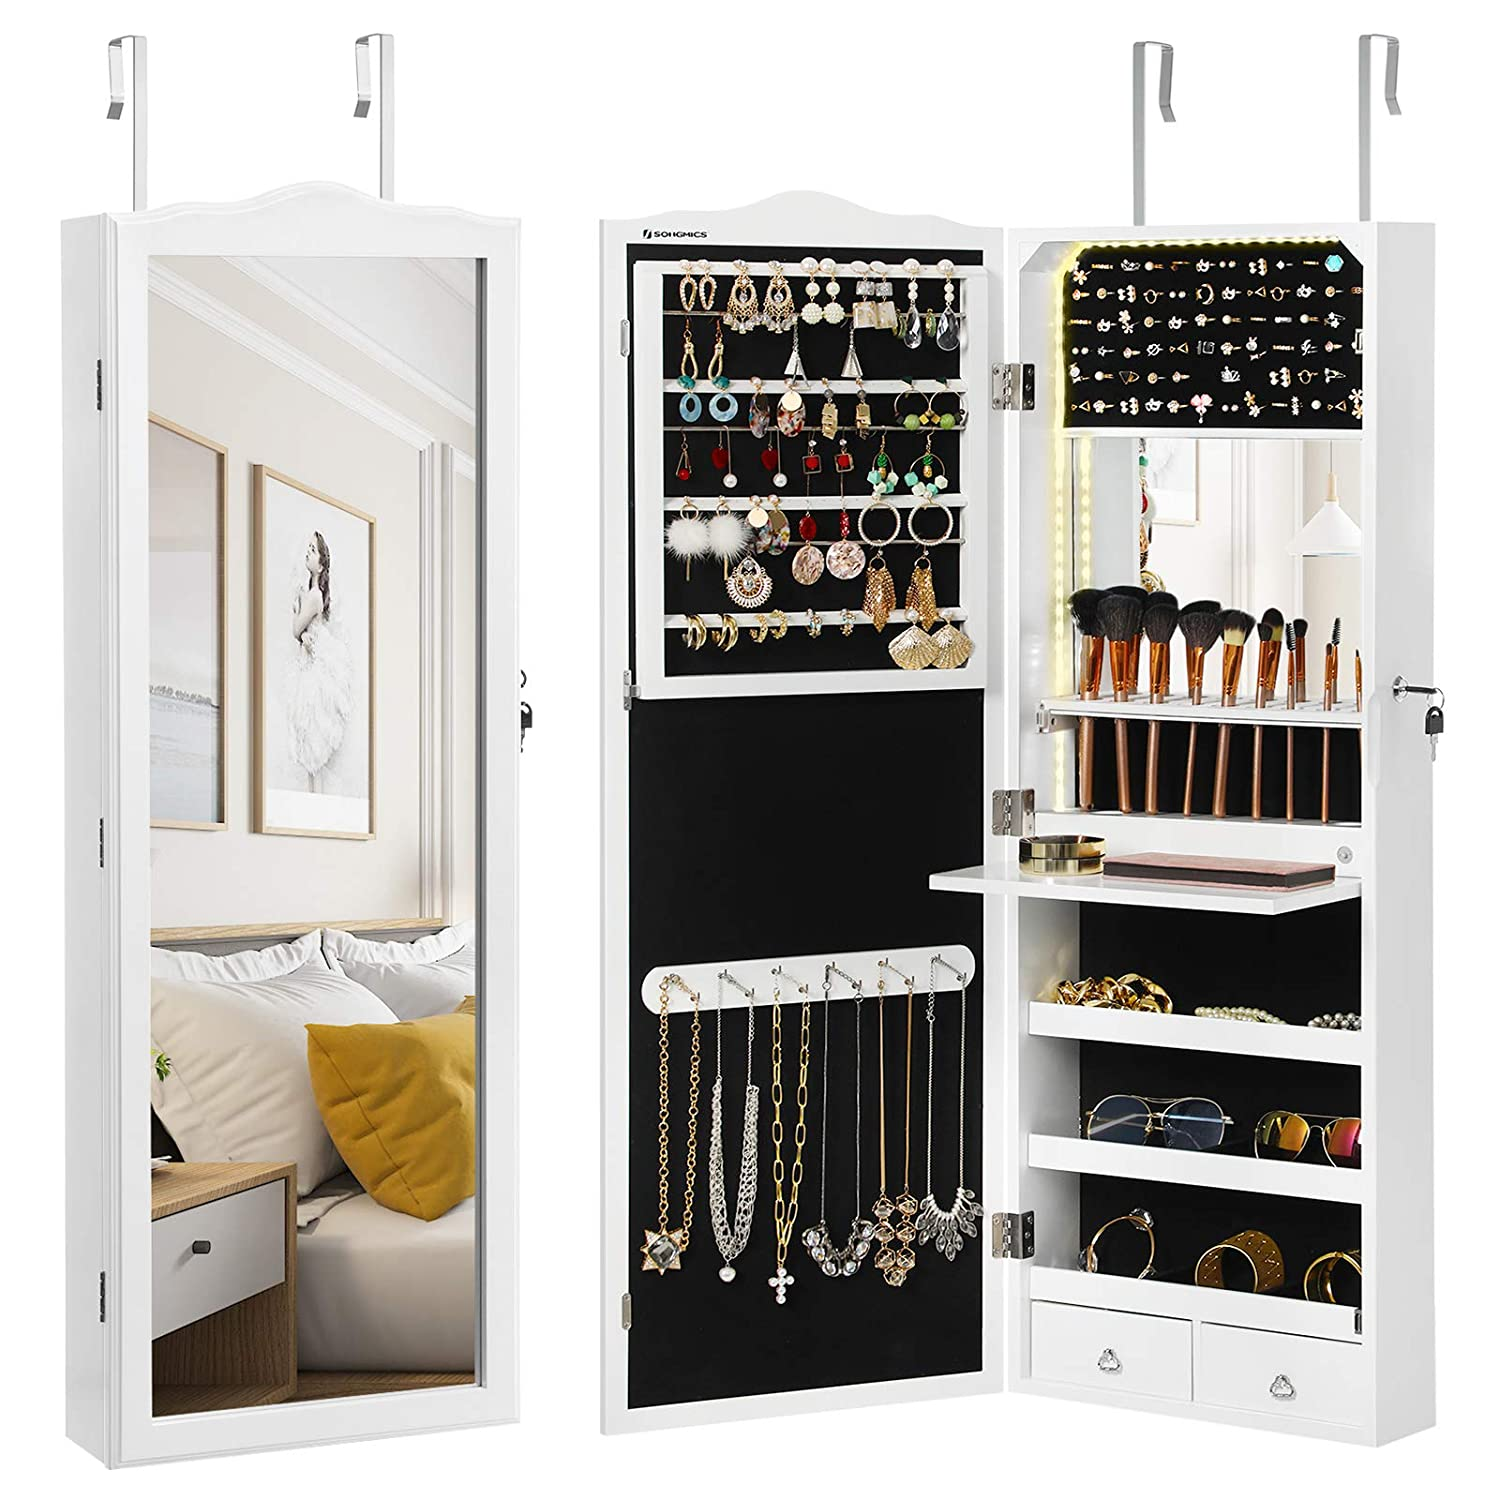 SONGMICS 95 LED Bulbs Jewelry Cabinet, Mirrored Jewelry Armoire with Makeup Tray and Inner Mirror, 2 Drawers, White UJJC64WT